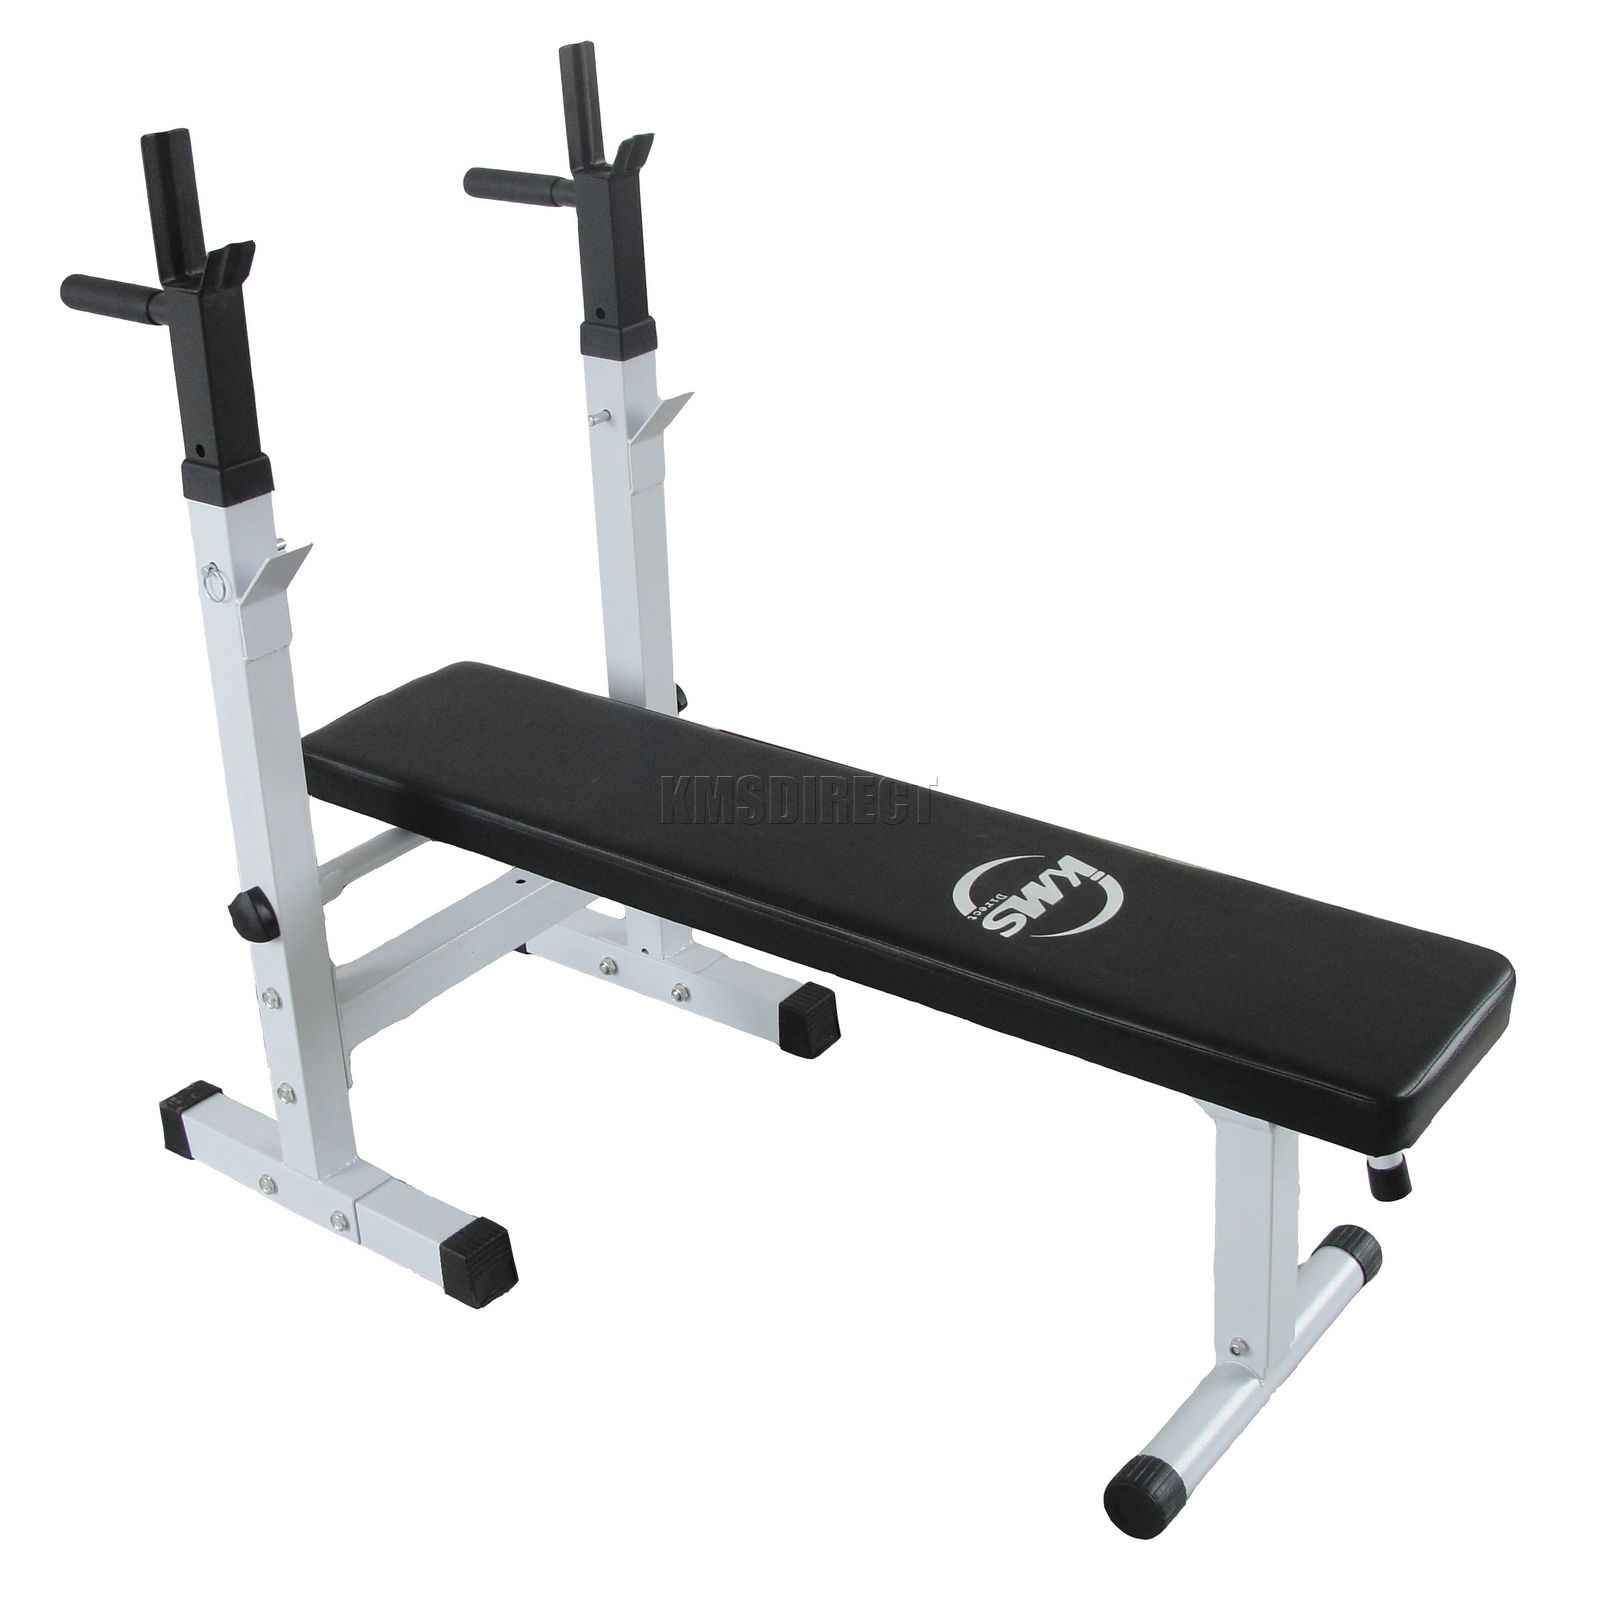 HEAVY DUTY GYM Shoulder Chest Press Sit Up Weights Bench